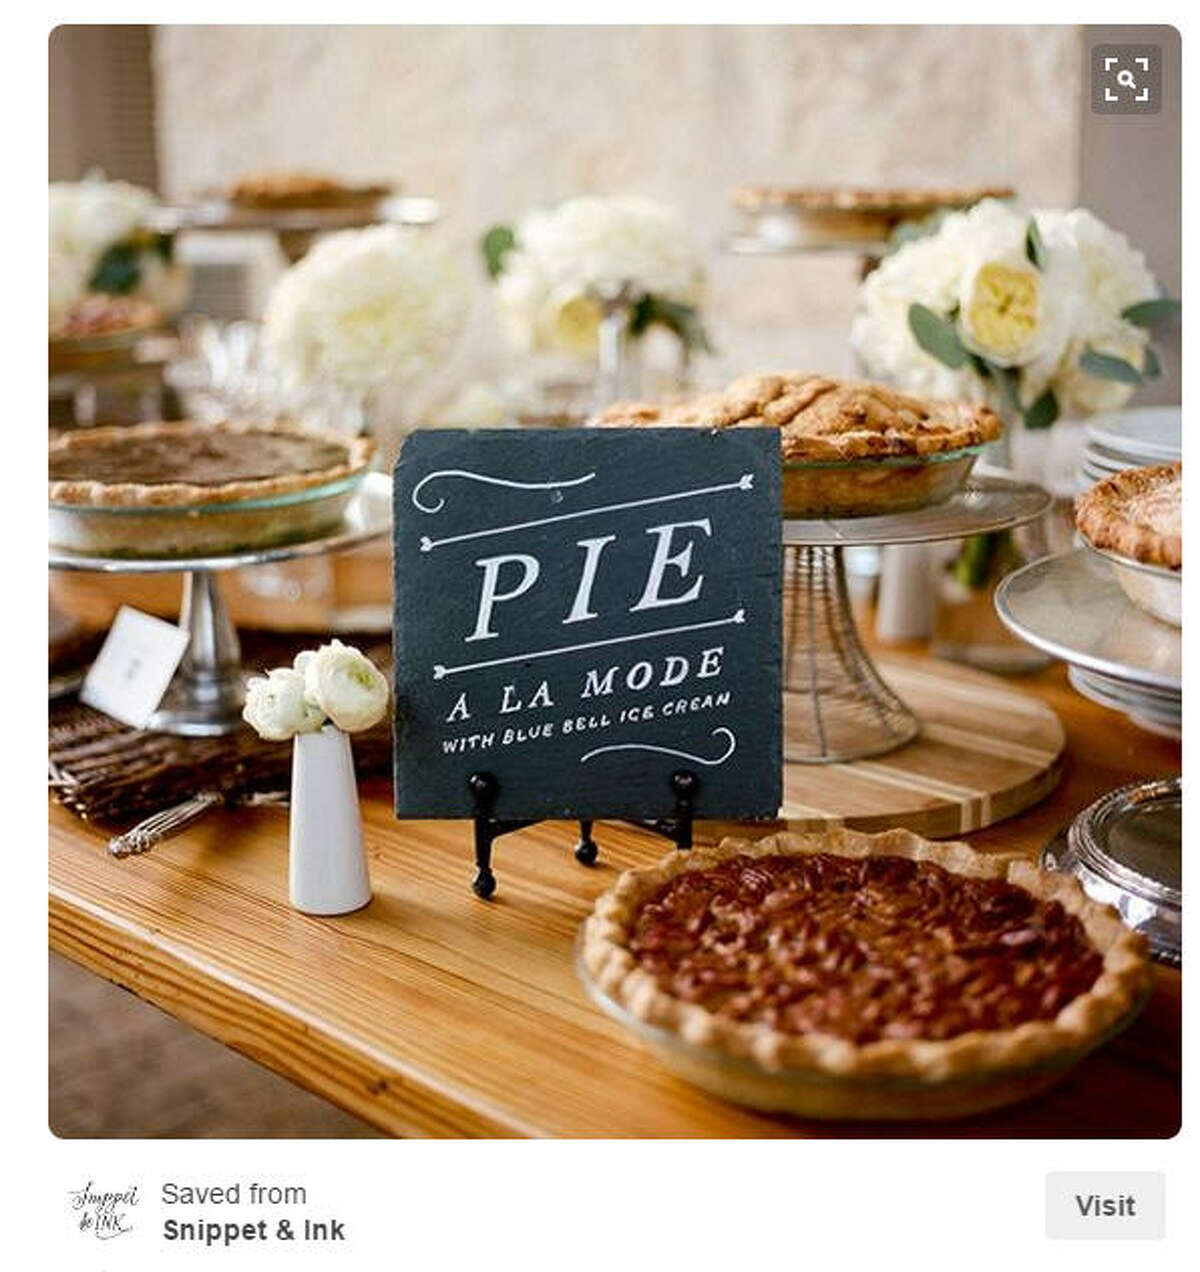 >>> Where to buy holidaypies in the Houston area ...